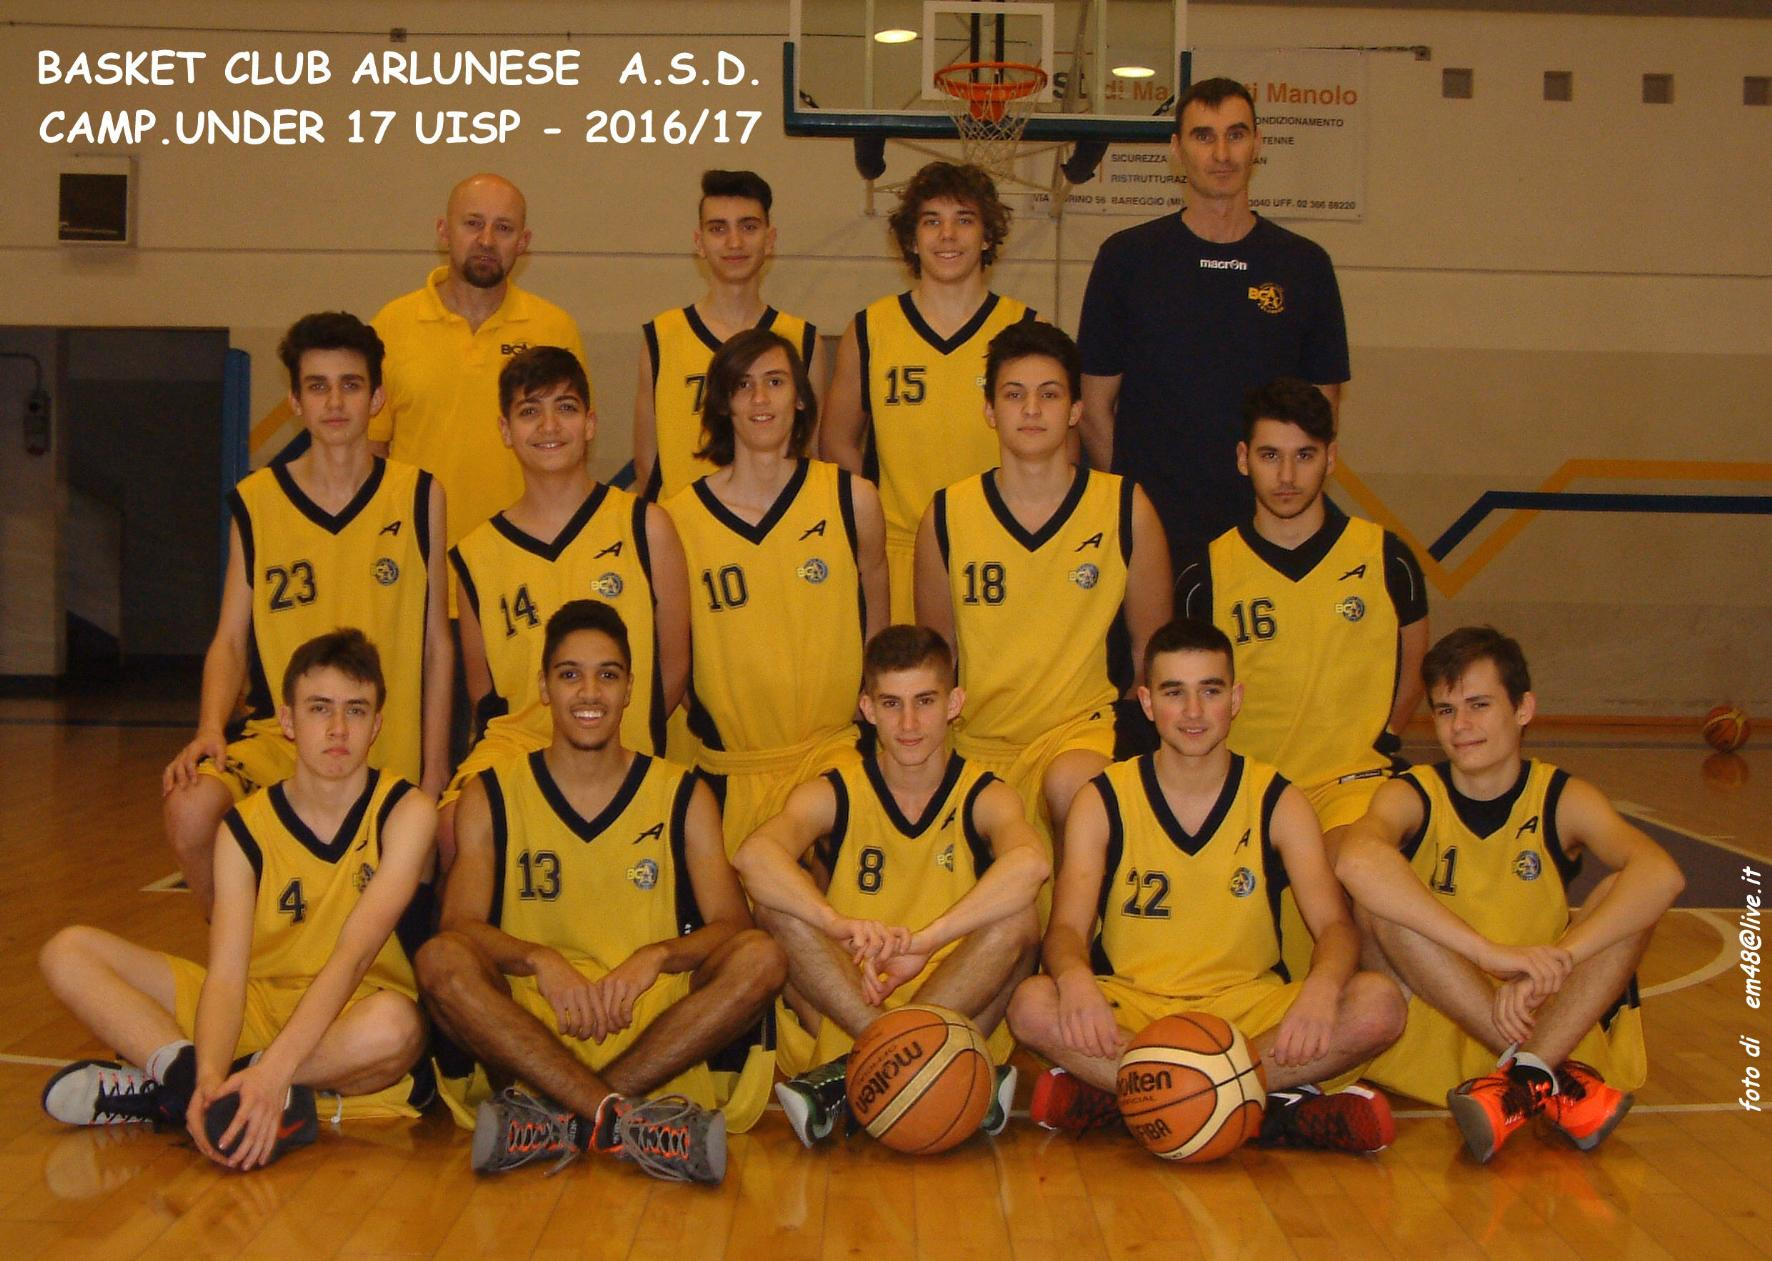 Uisp Basket Milano Calendario.Under 17 Uisp 16 17